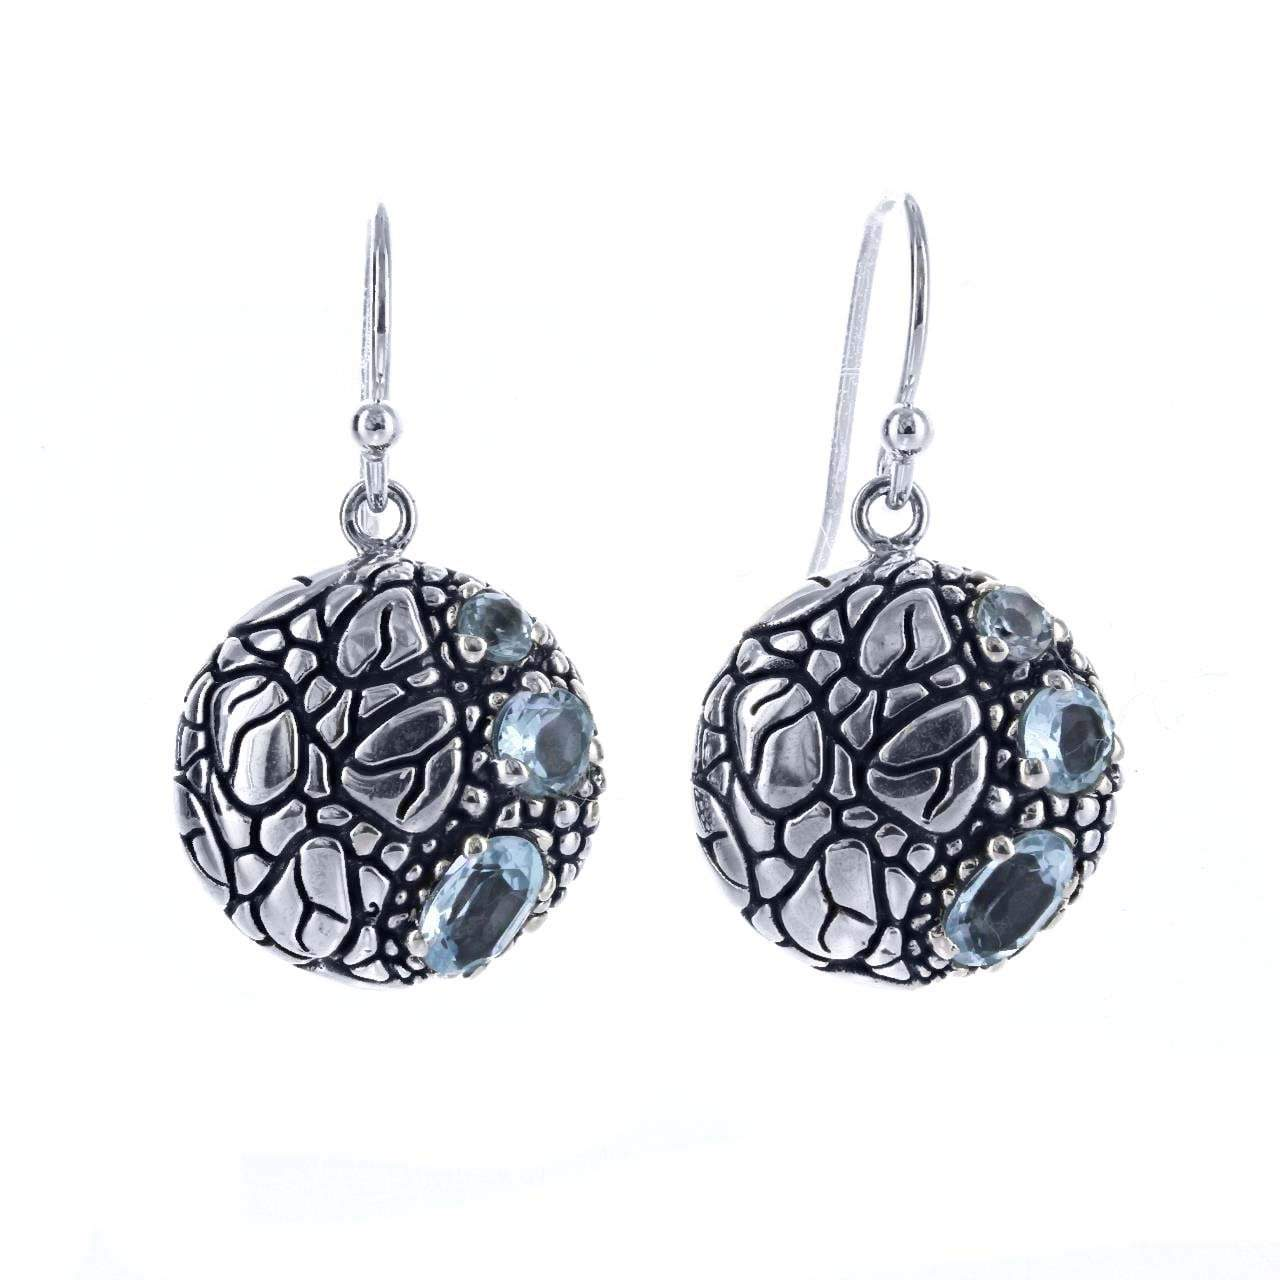 David Beck Bali Round Earrings in Sterling Silver and Blue Topaz